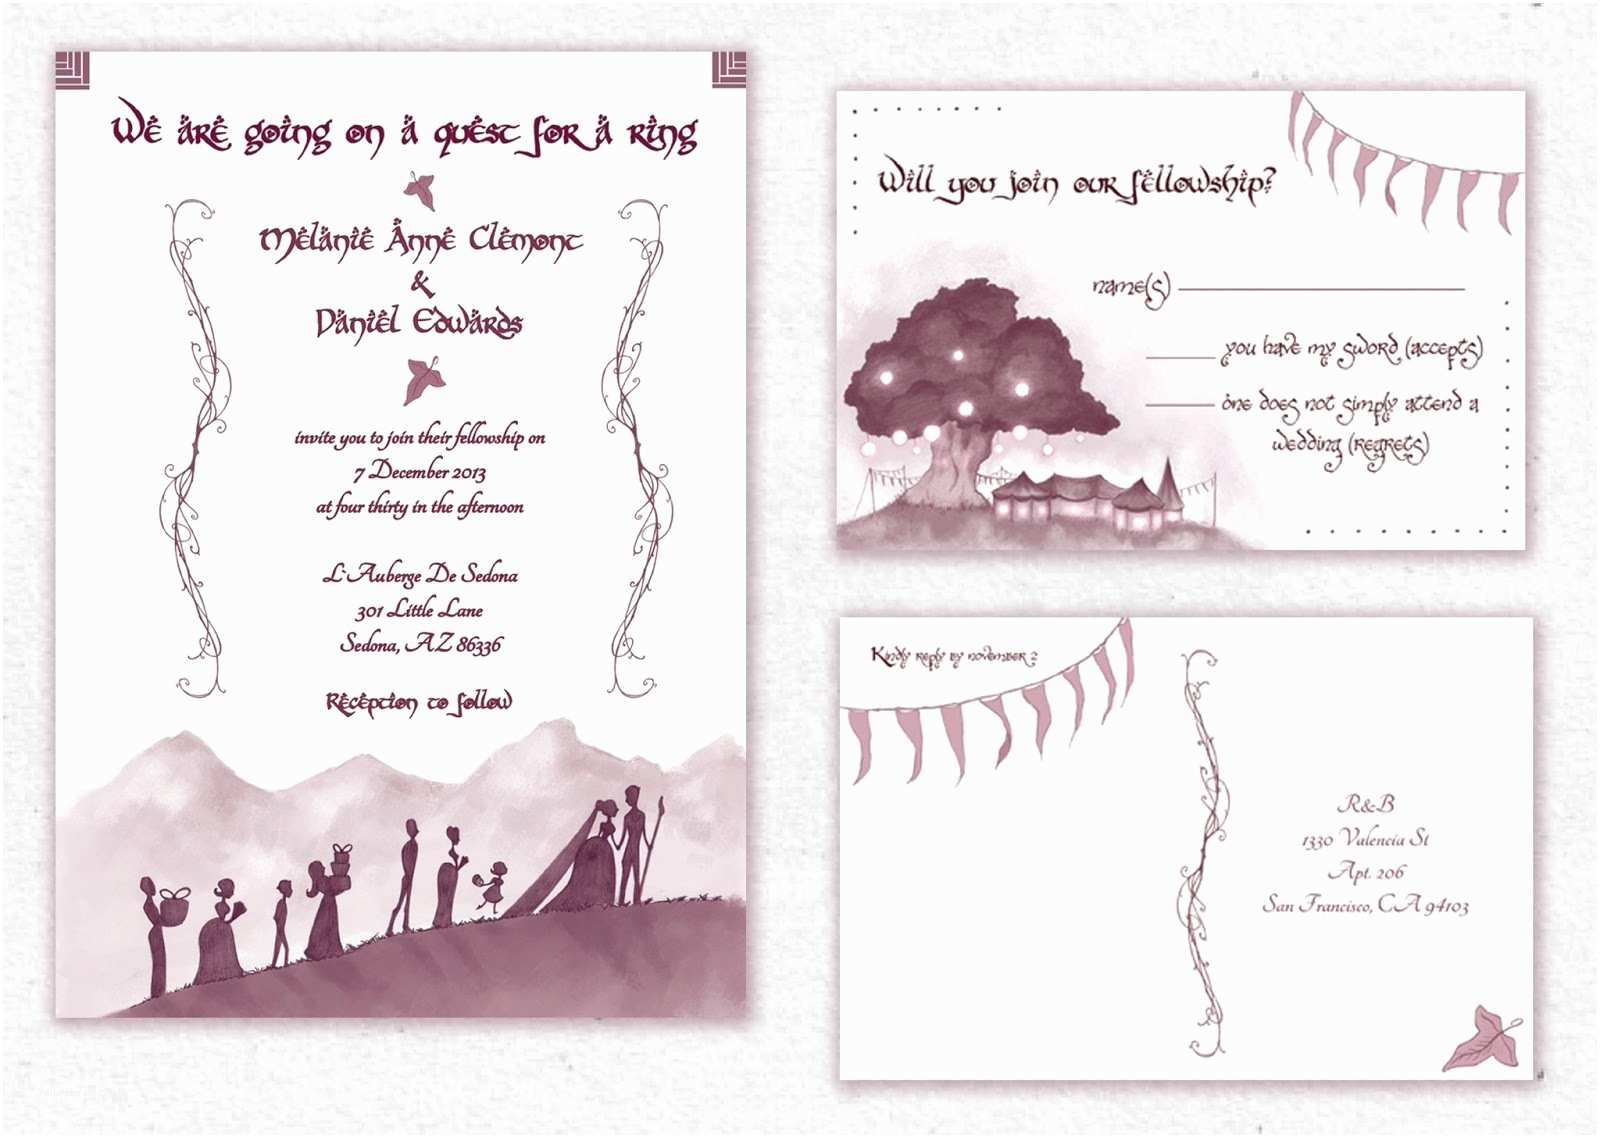 Lord Of the Rings Wedding Invitations Awkward Affections A Sneak Peek Help Us Geeky Love You